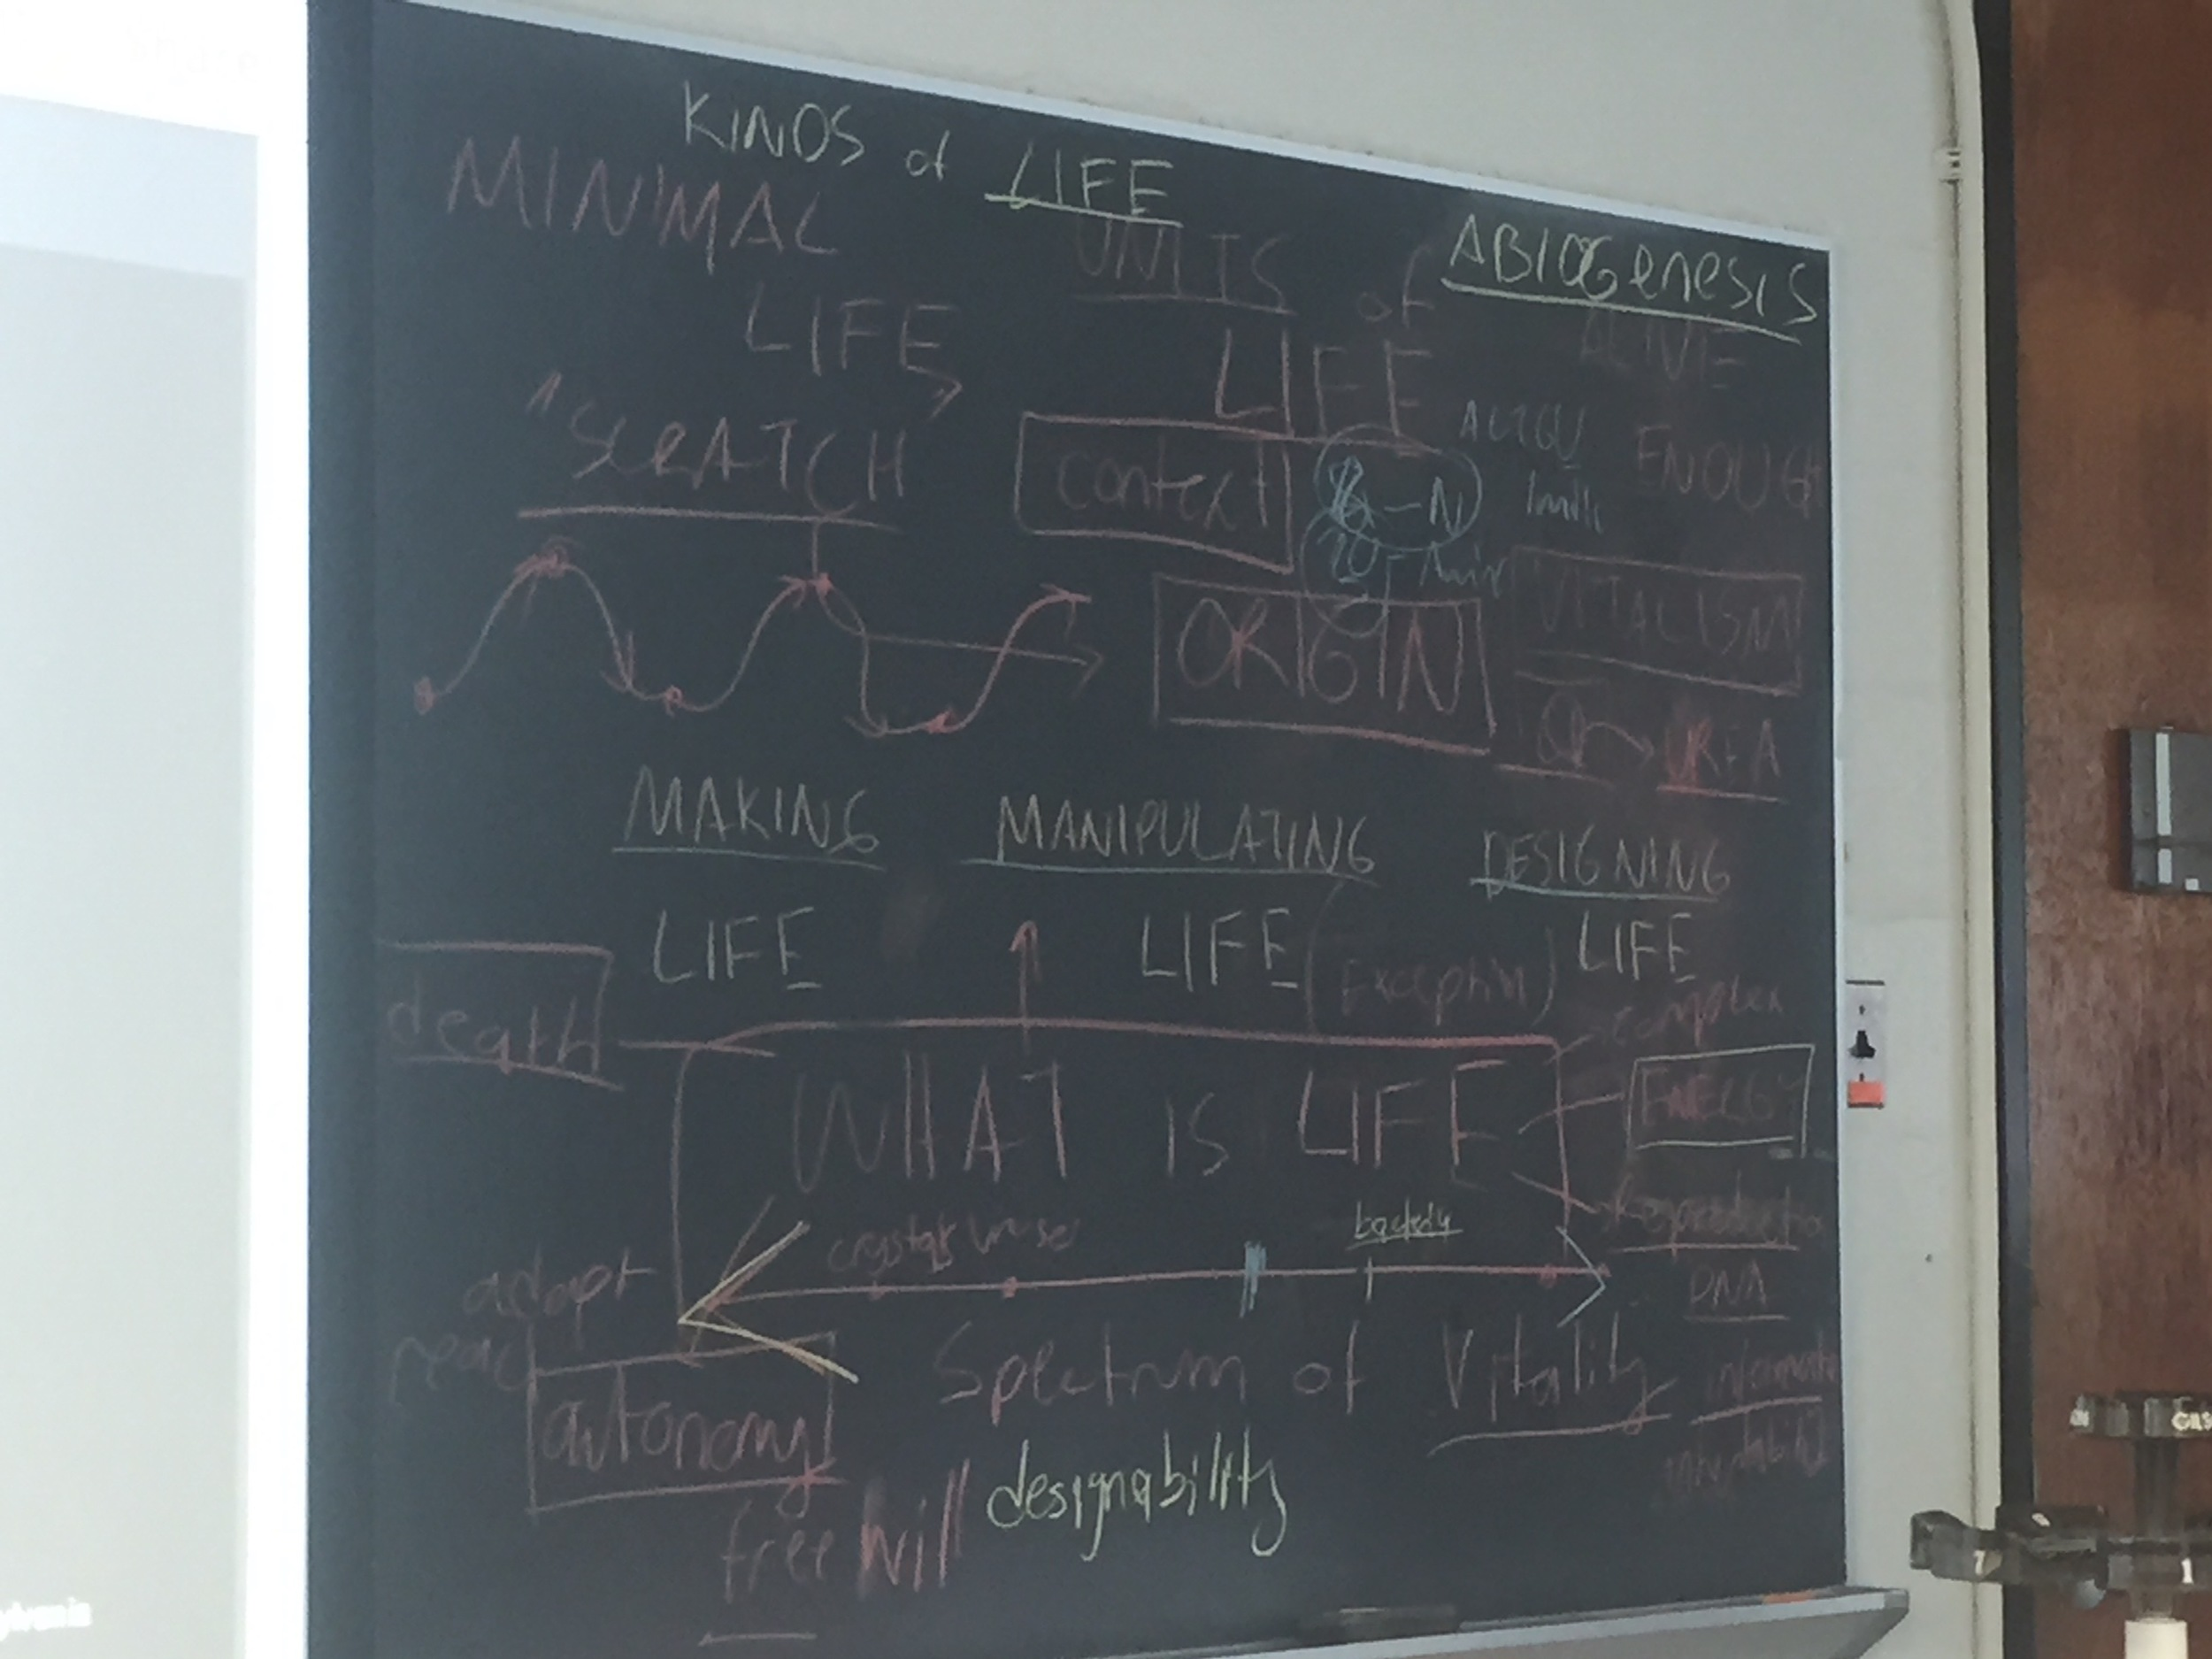 Theories of Life discussion board.